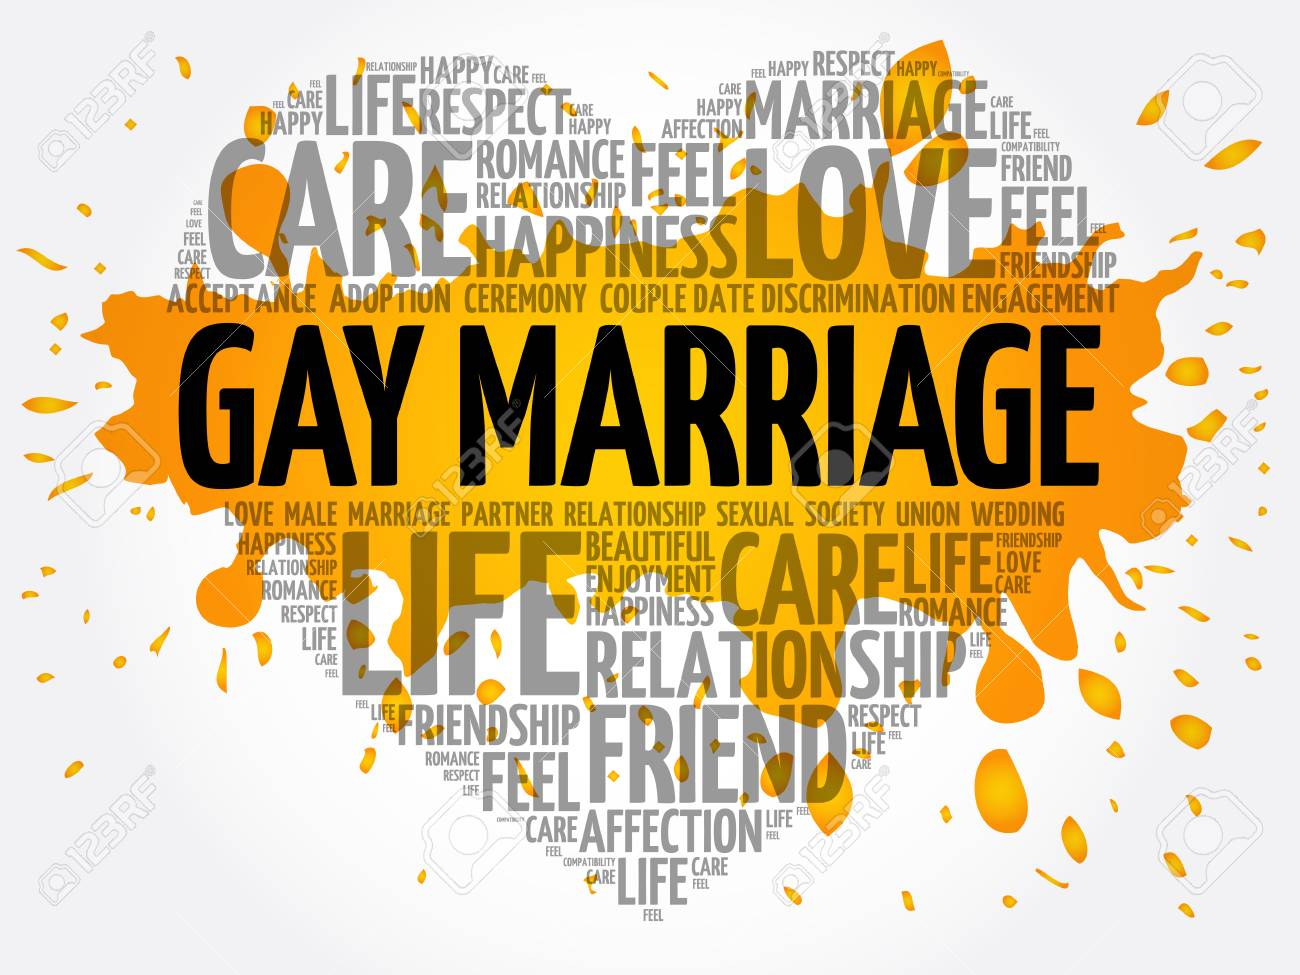 Girlt teens background of gay marriage